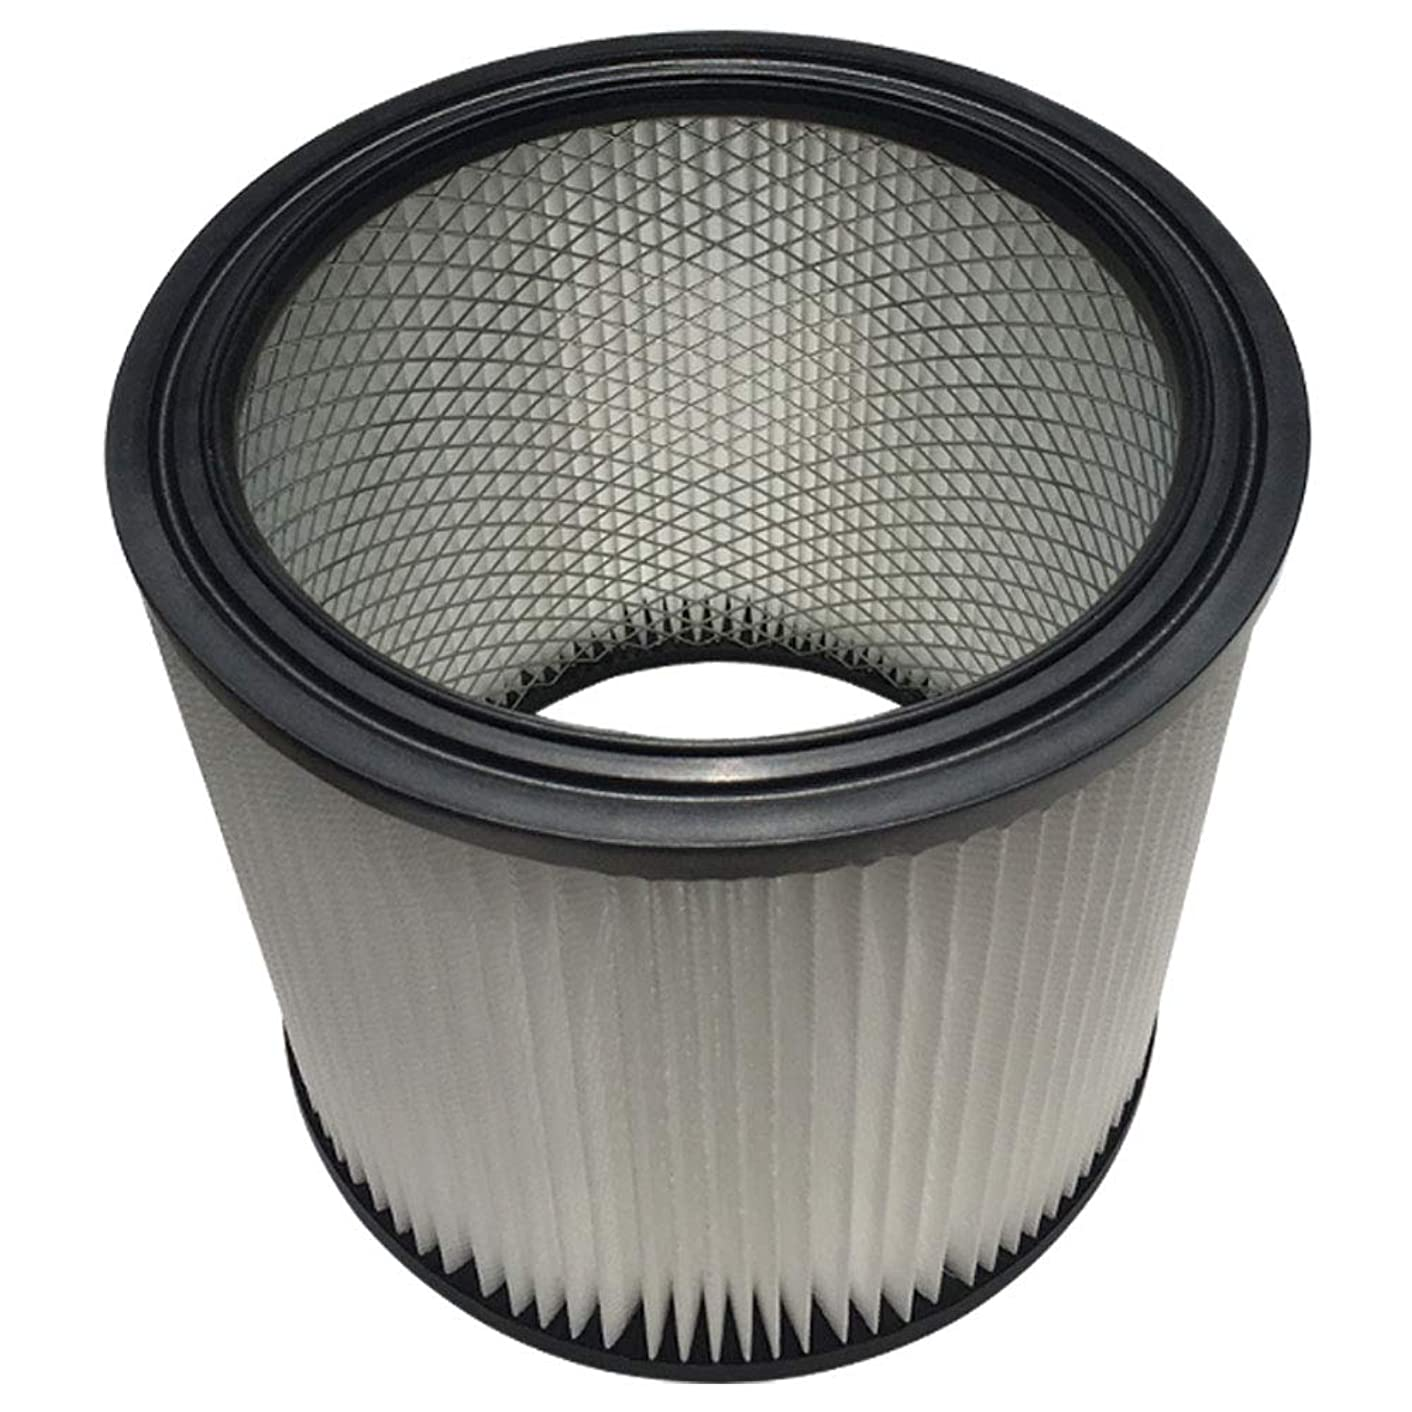 HIHEPA Cartridge Filter Compatible with Shop-Vac 90304 9030400 903-04-00 LB650C QPL650 Compound Filter U,Fit Part # MSD-4518600